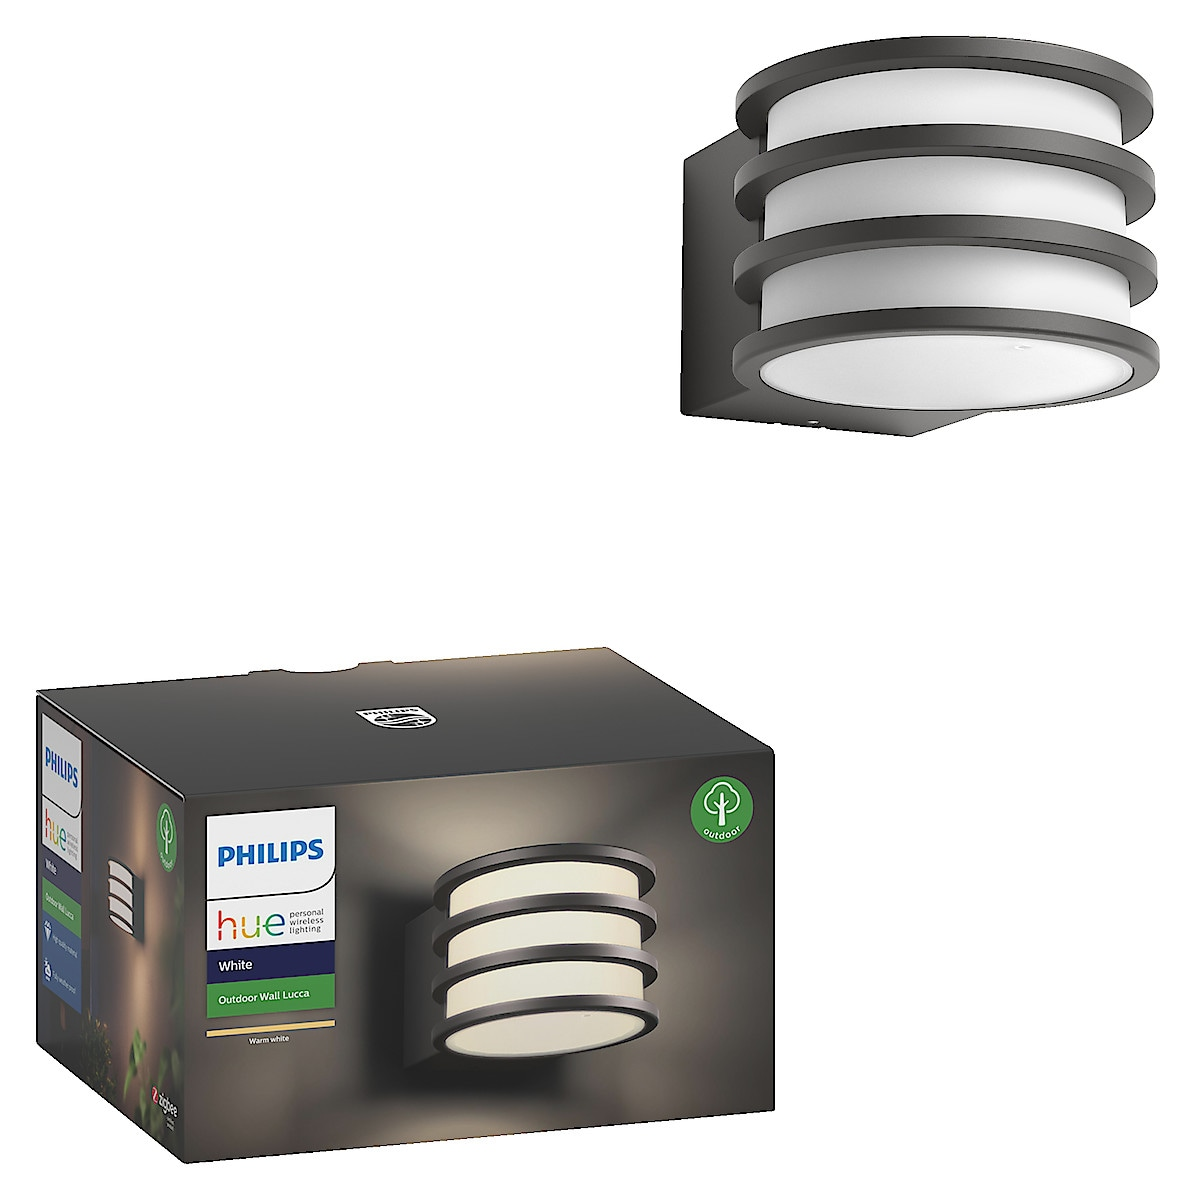 Vägglampa Lucca Philips Hue White